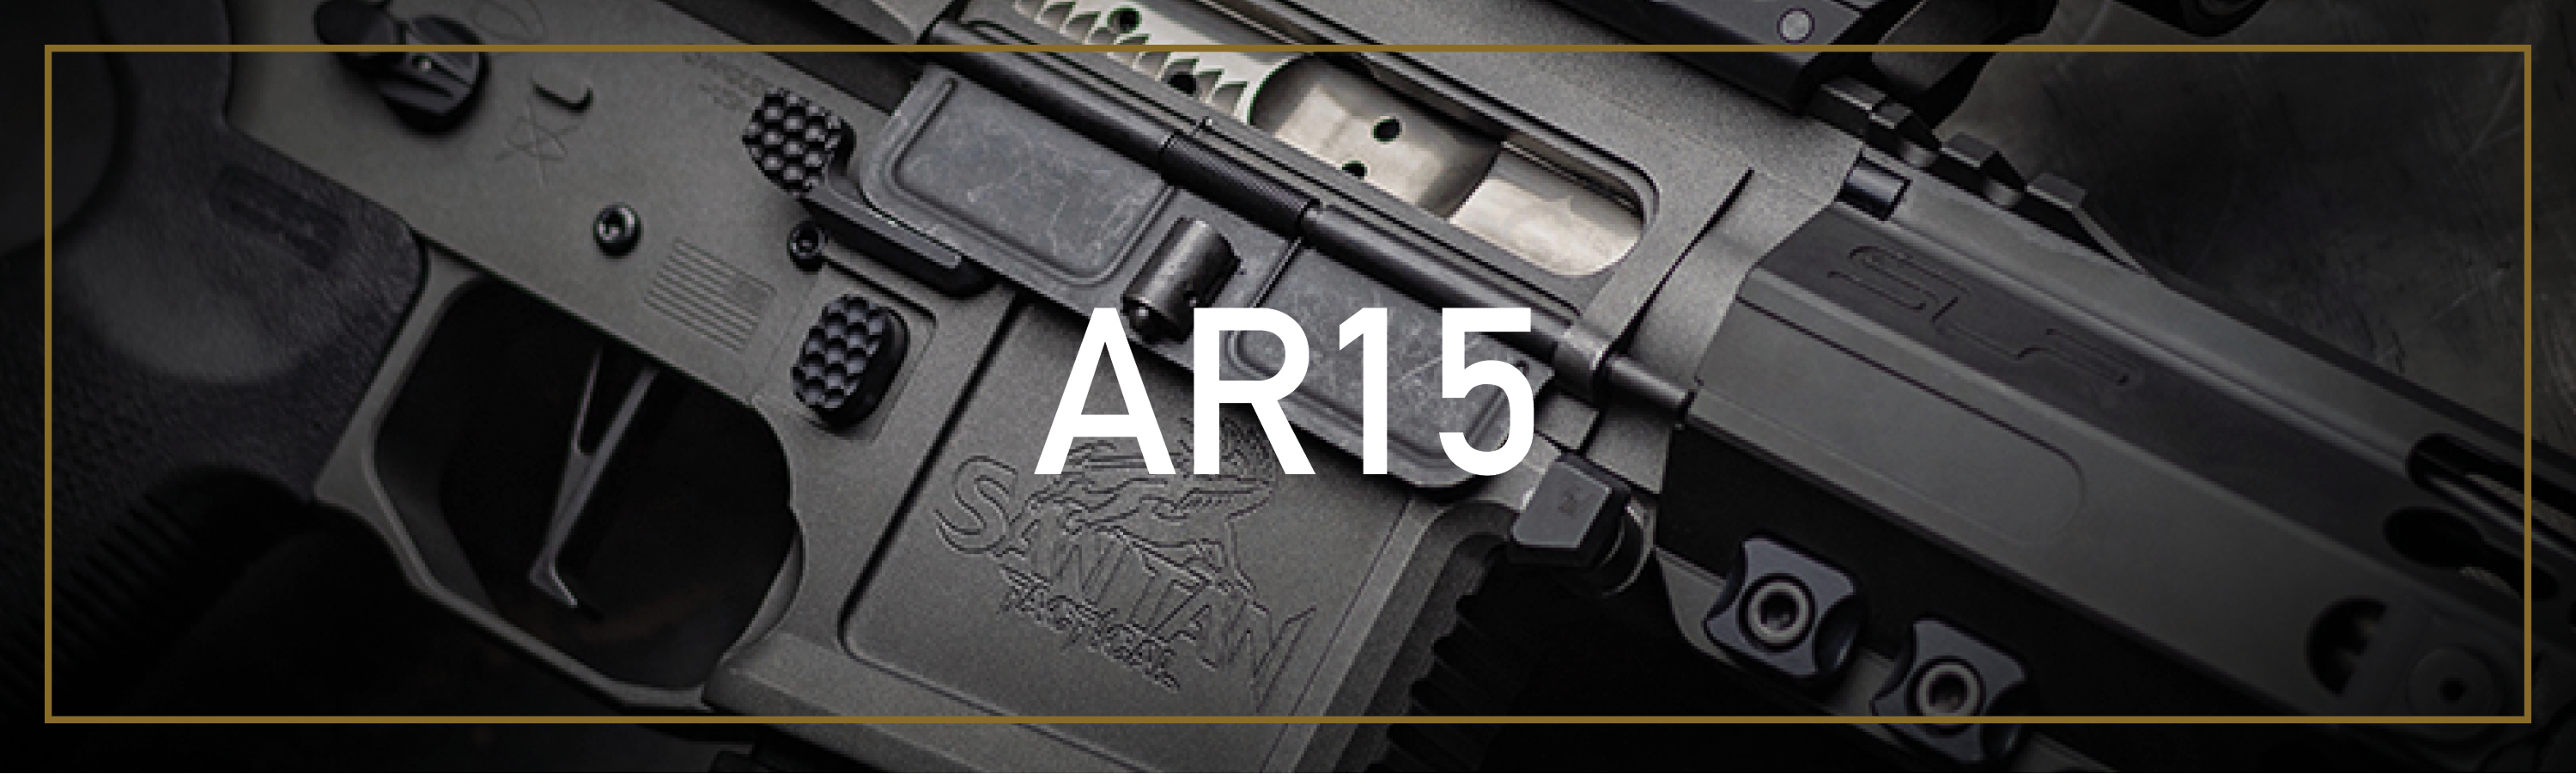 Shop AR15 Parts from Tioga Armory.